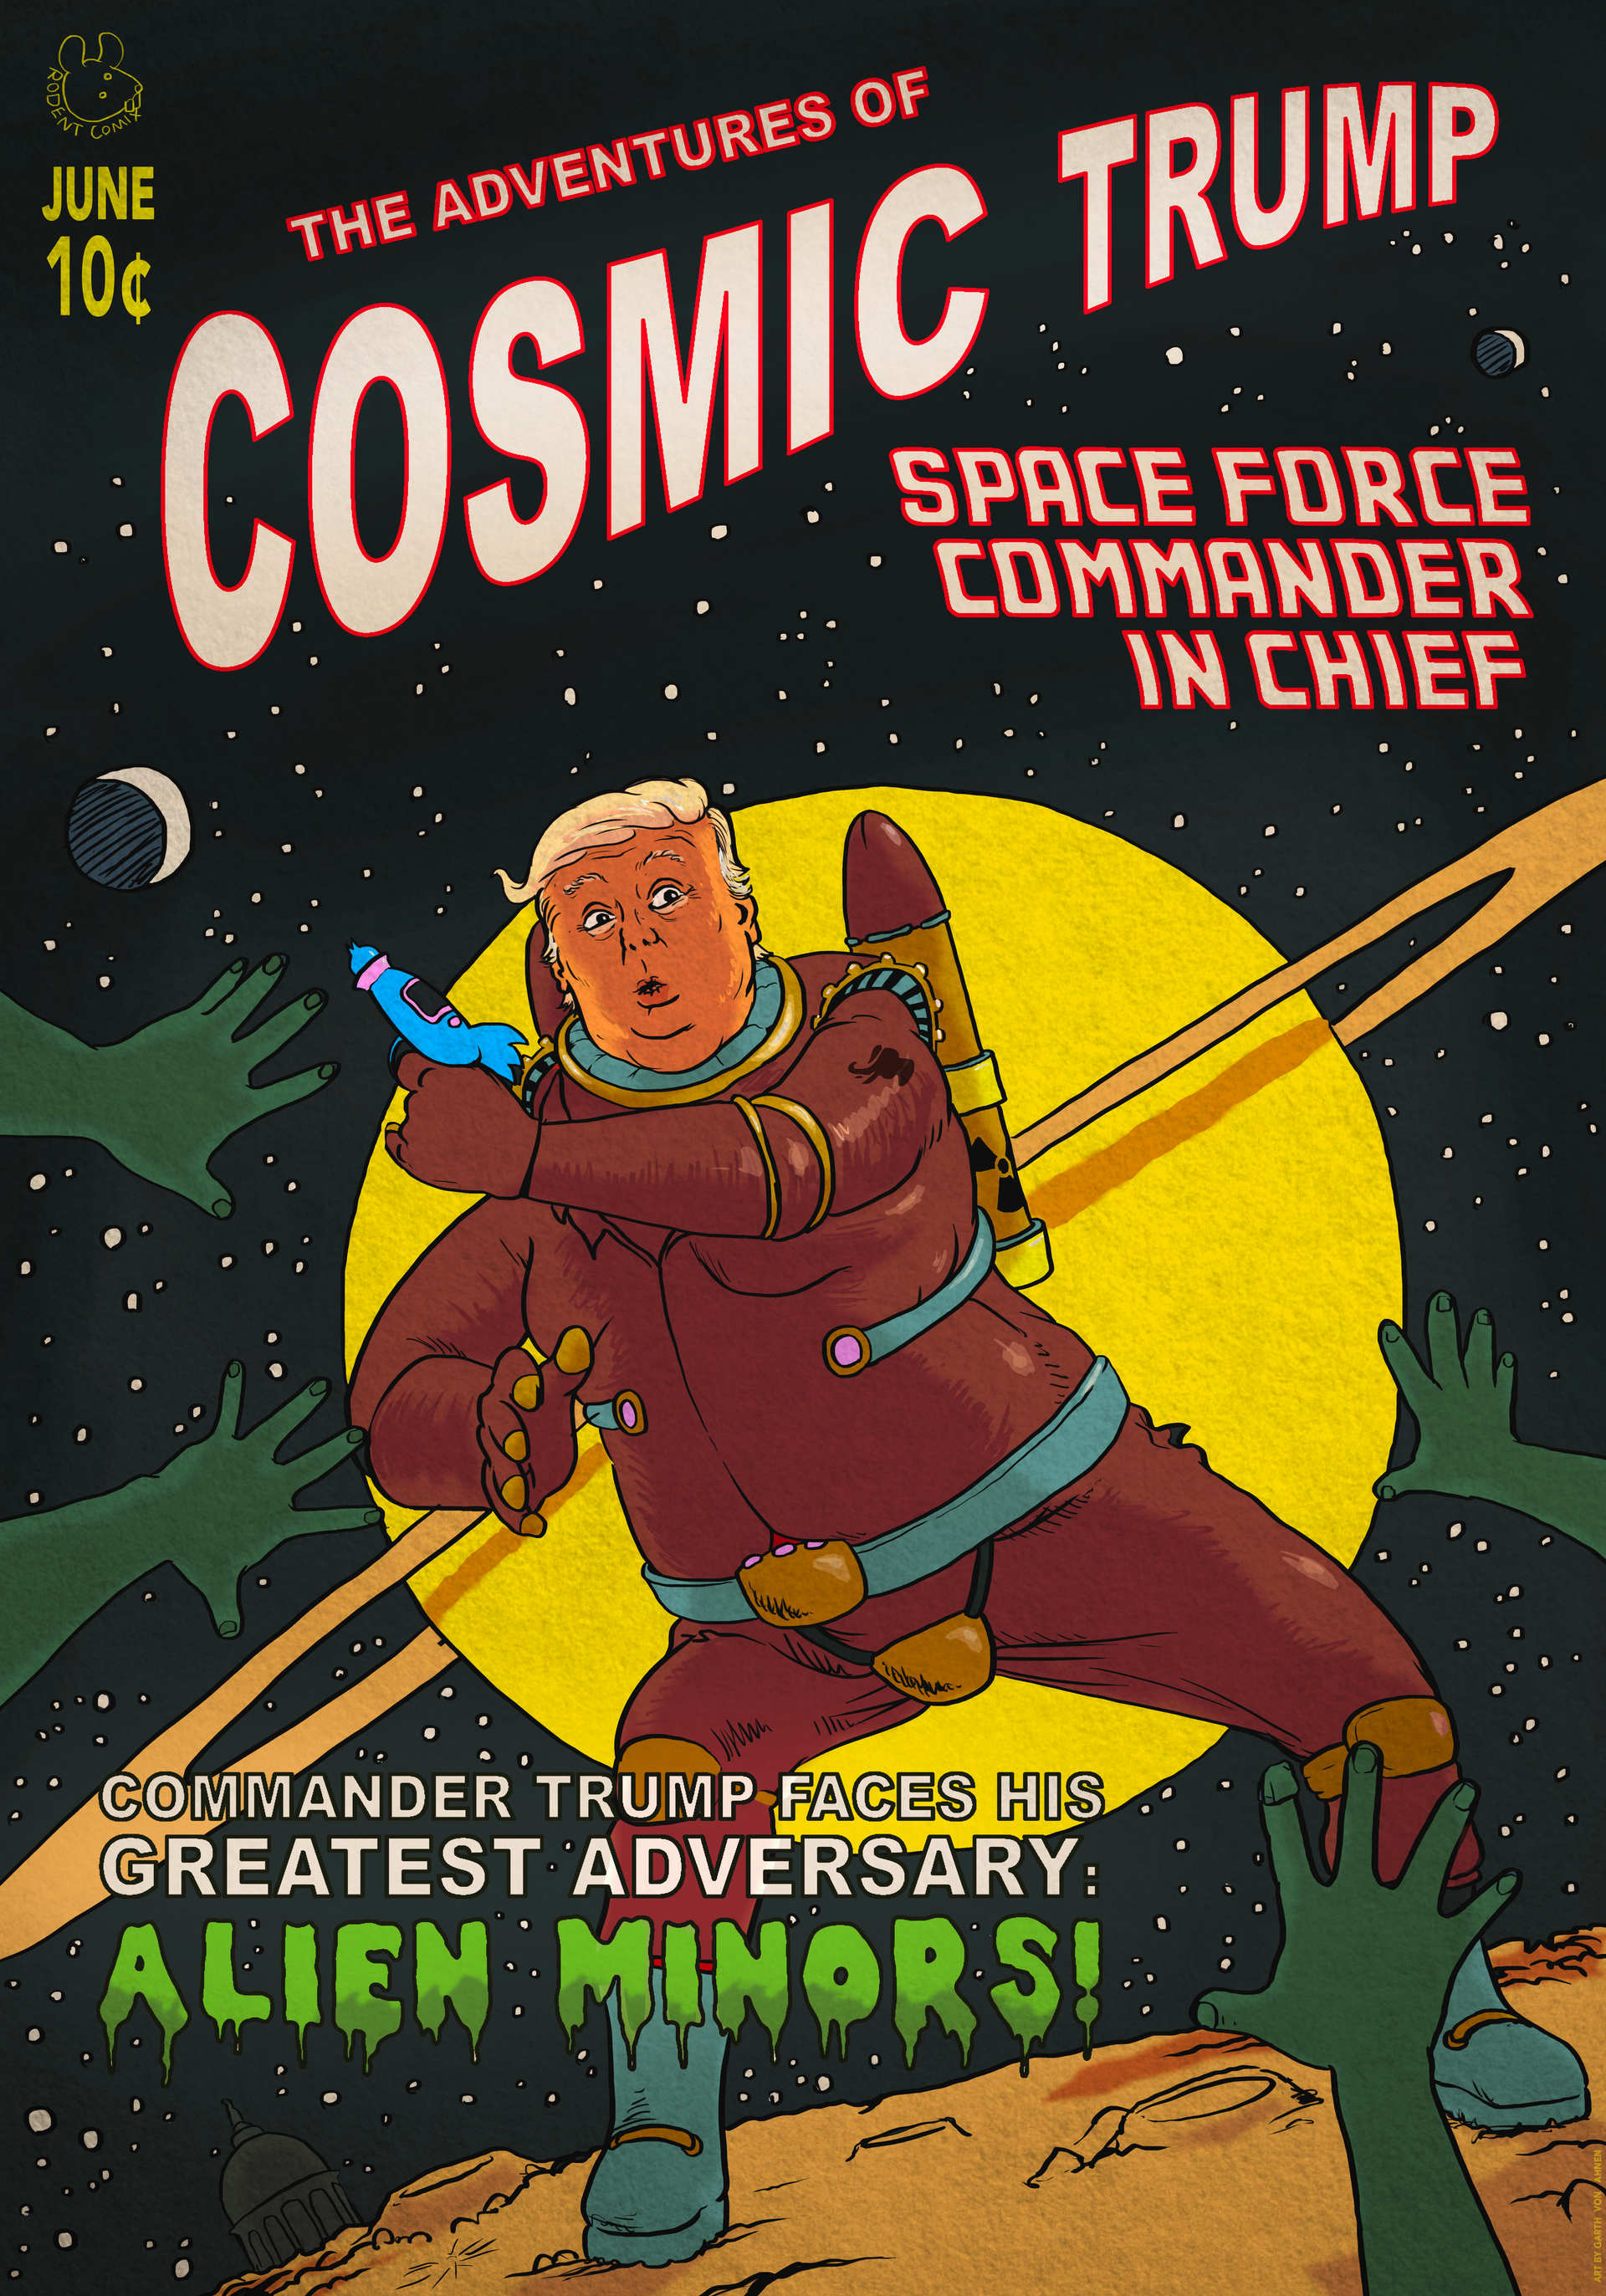 Cosmic Trump 50s Comic